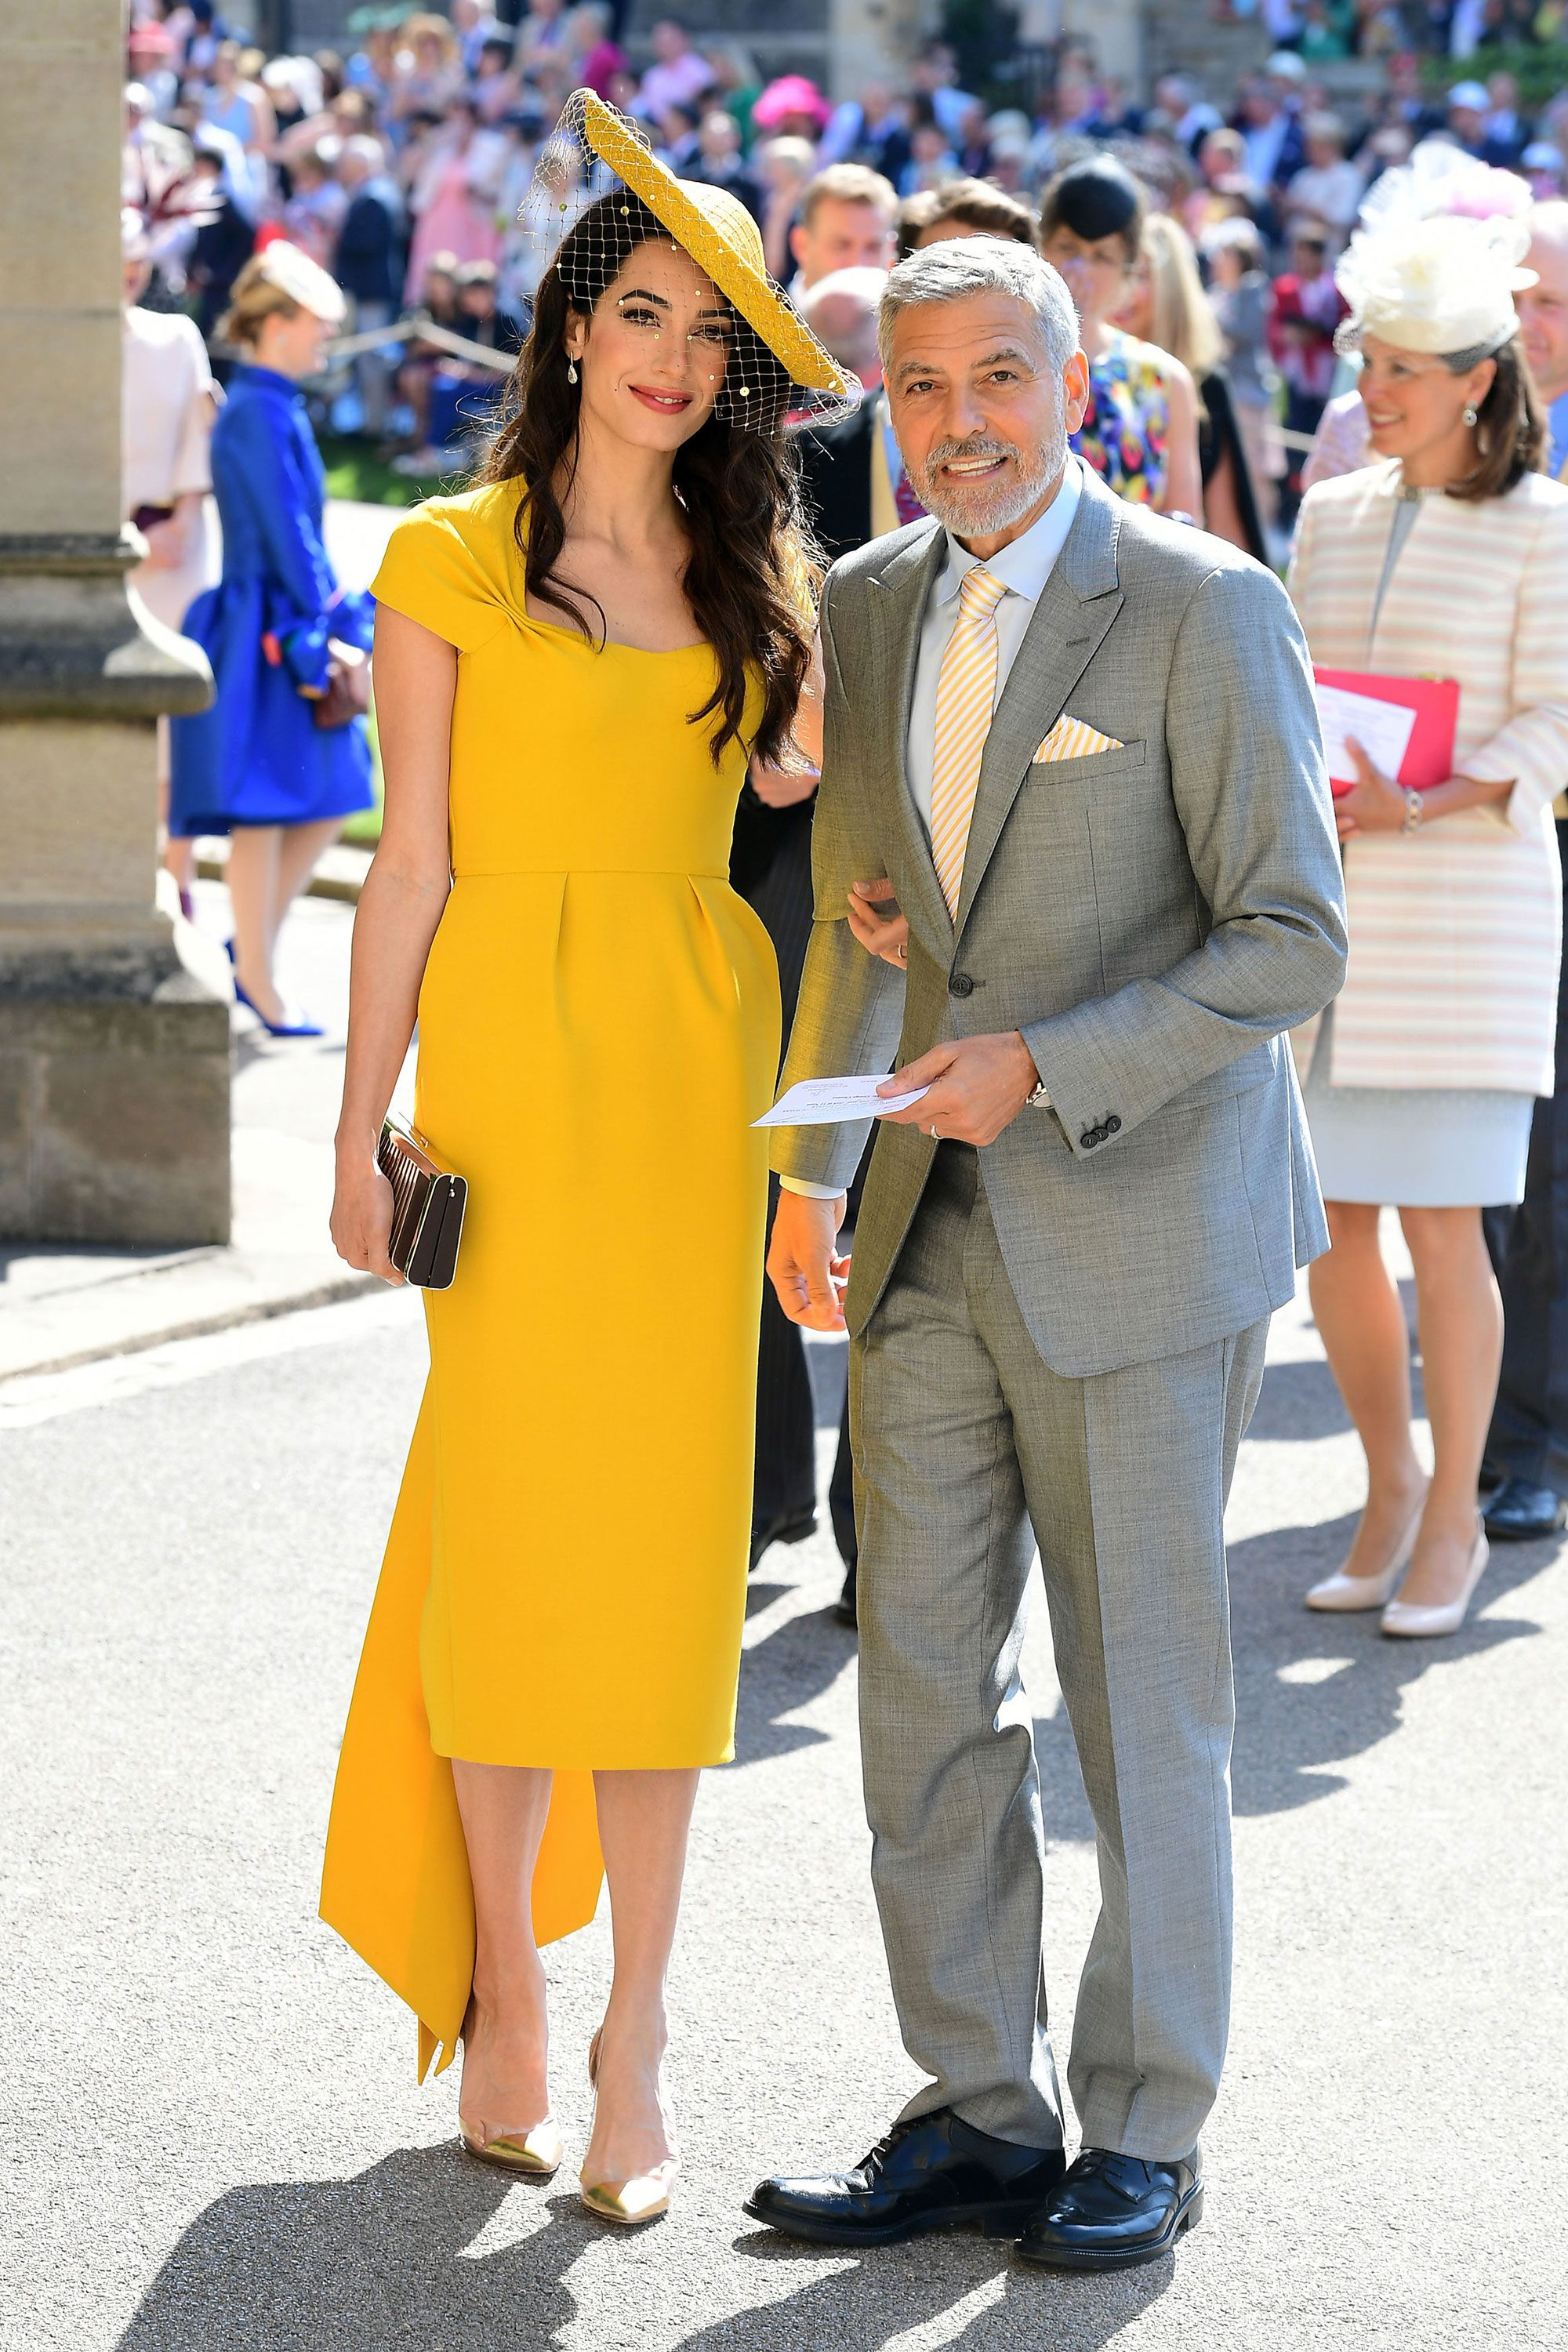 Amal Clooney Looks Beautiful In Yellow For The Royal Wedding Amal